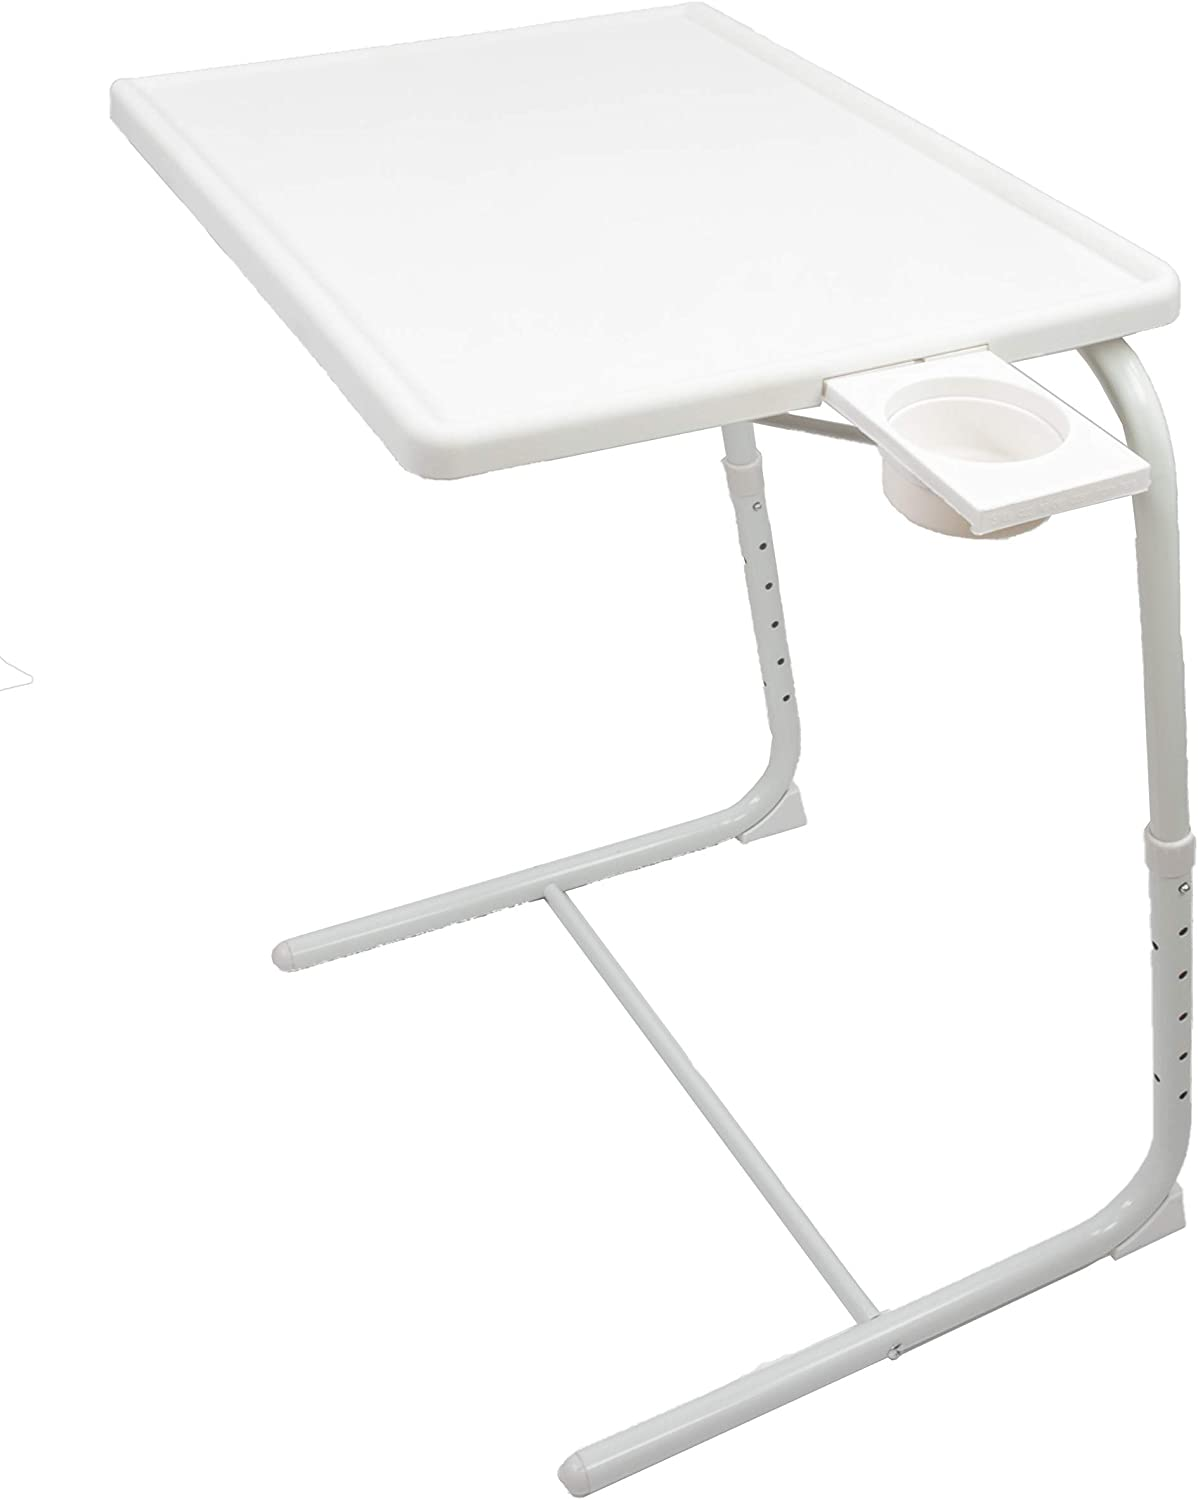 - Amazon.com: 5 STAR SUPER DEALS Portable Foldable TV Tray Table